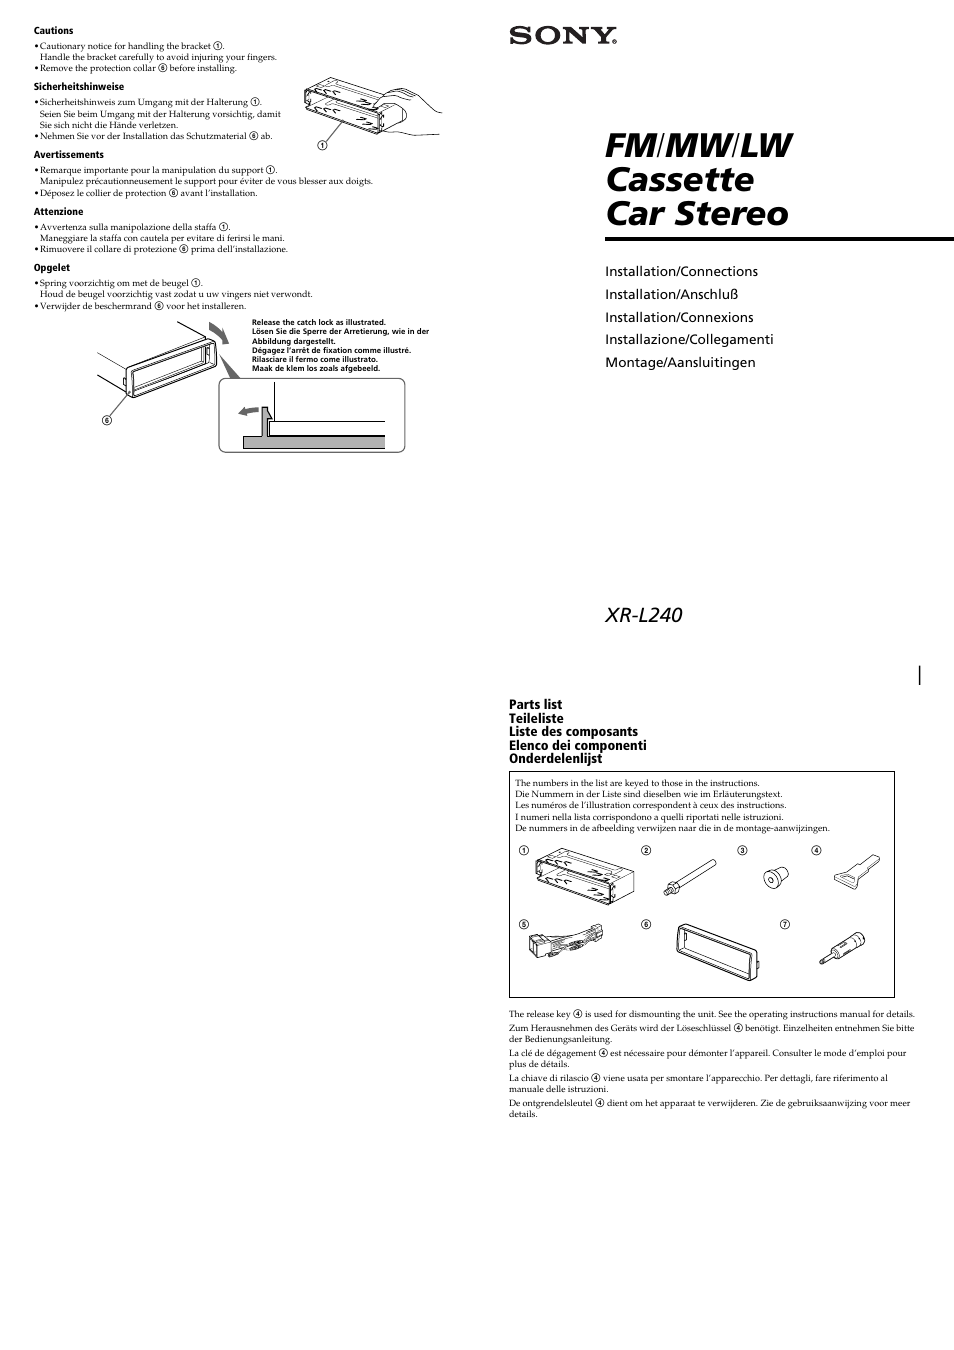 Sony XR-L240 User Manual | 4 pages